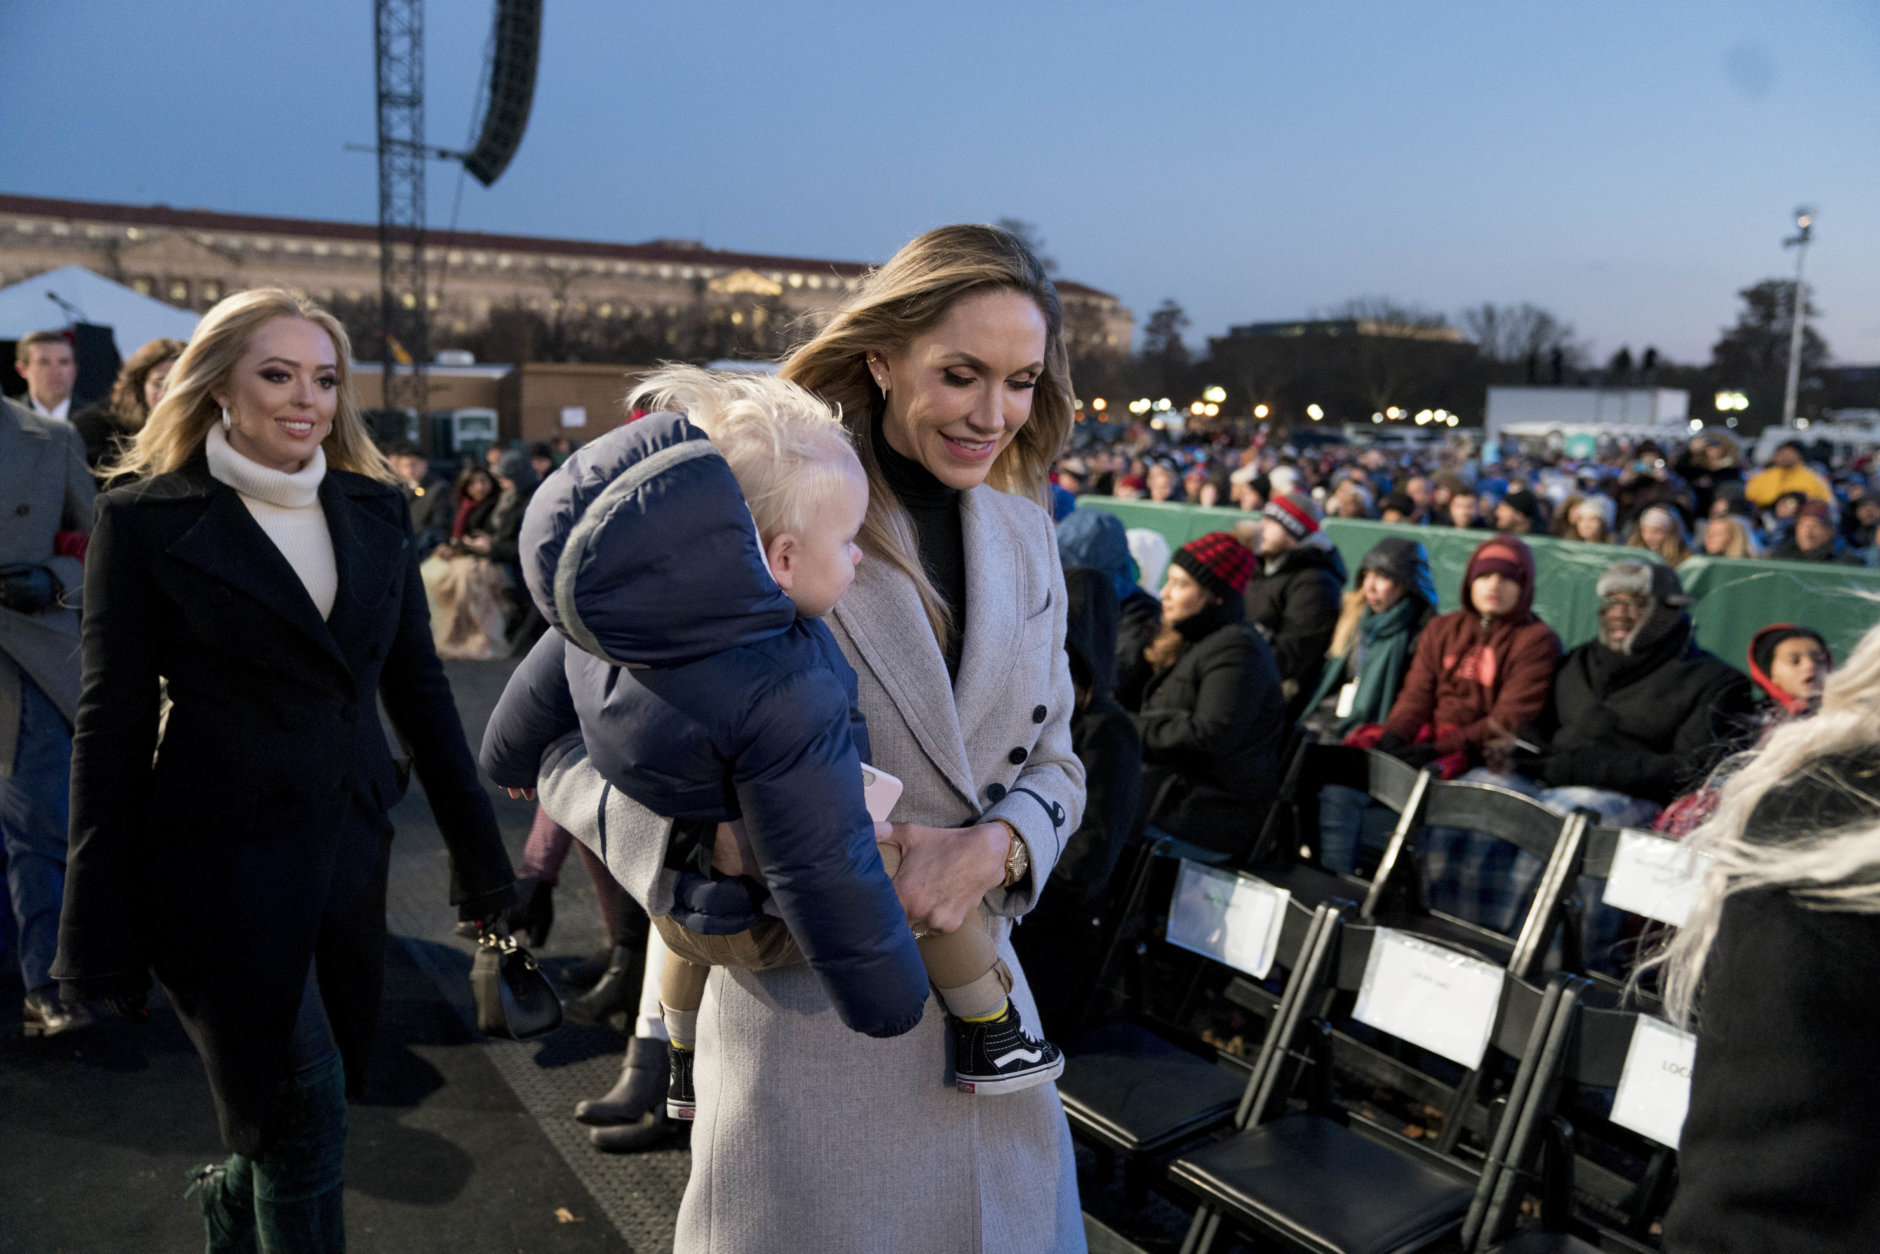 Lara Trump, the wife of Eric Trump carries her son Eric, as she and Tiffany Trump, the daughter of President Donald Trump, left, arrives for the National Christmas Tree lighting ceremony at the Ellipse near the White House in Washington, Wednesday, Nov. 28, 2018. (AP Photo/Andrew Harnik)